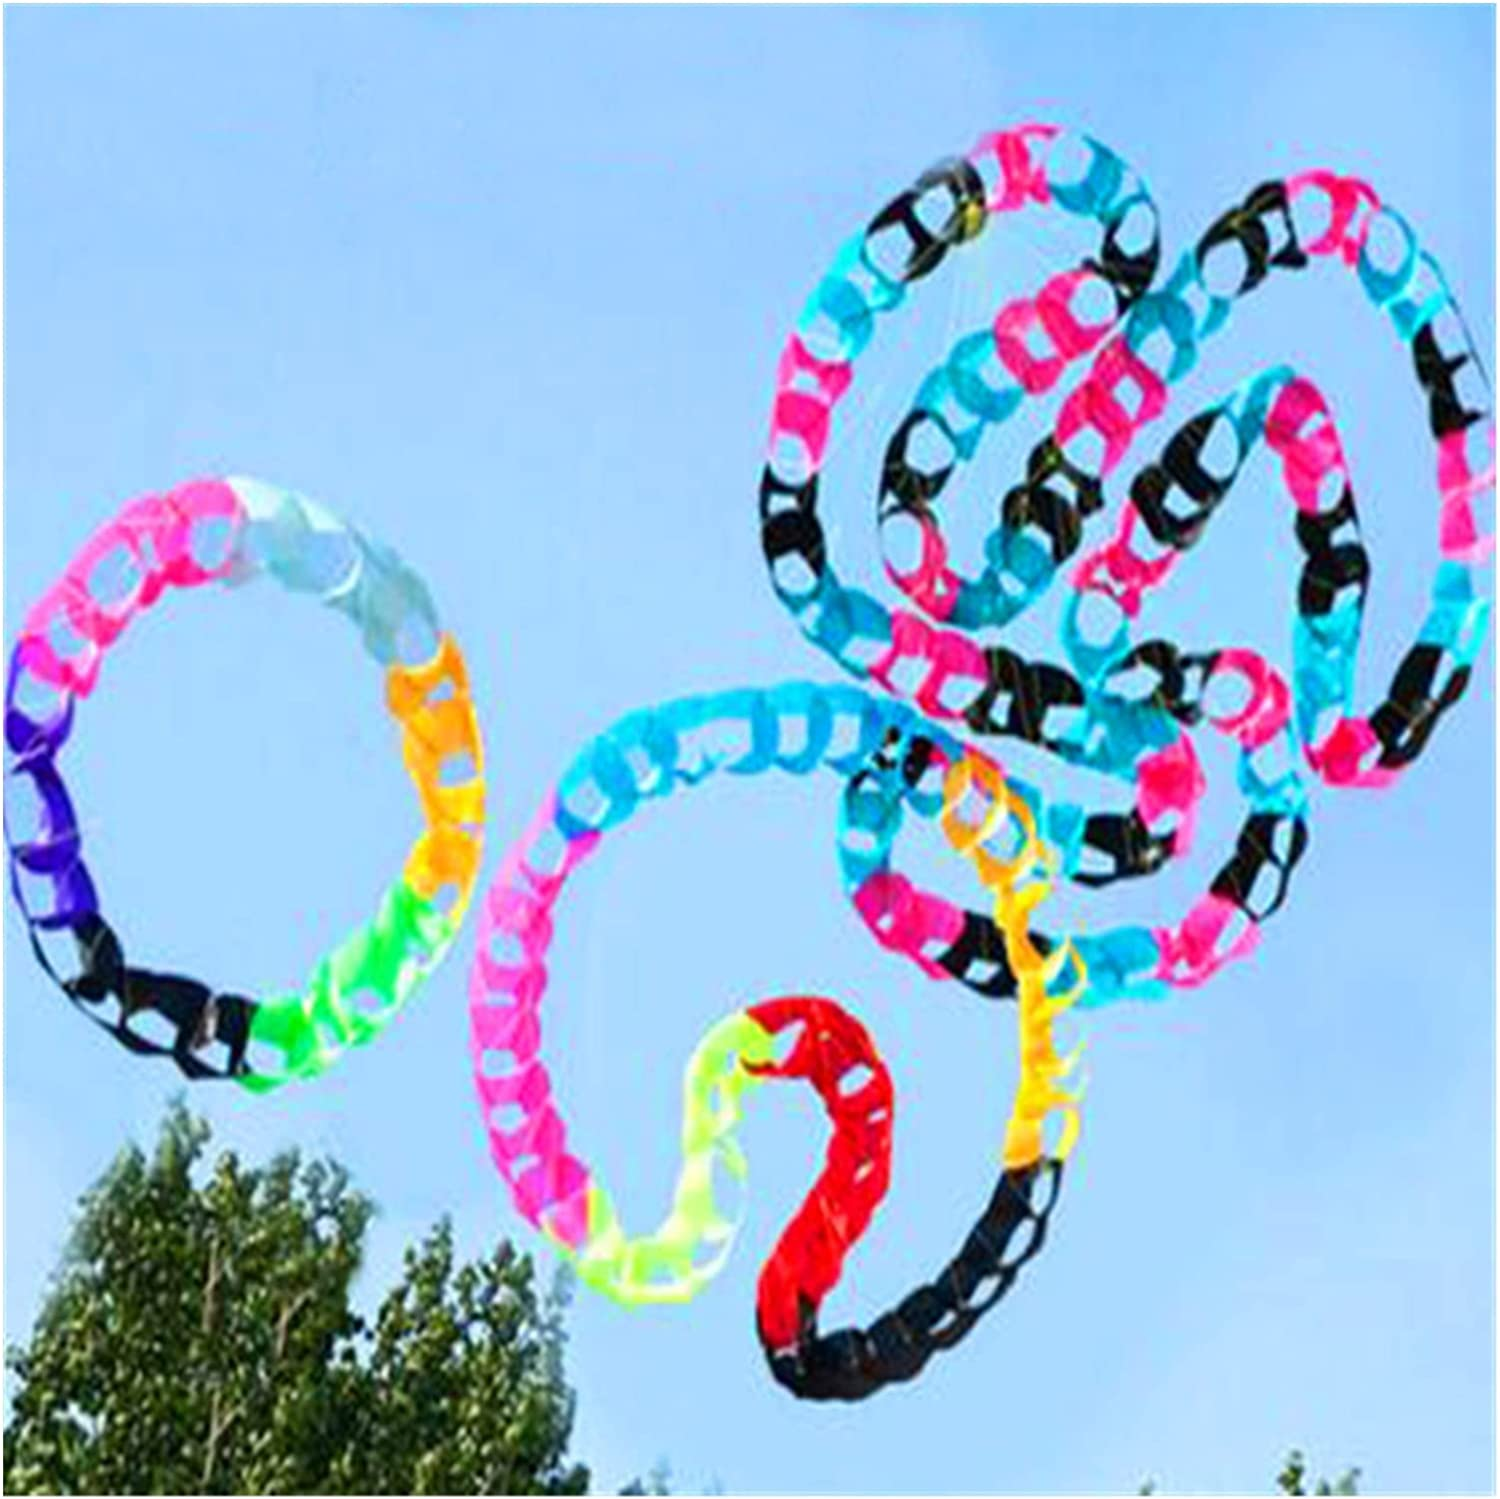 LXQS Outdoor Kite Circles Holes Soft Ranking TOP11 favorite Outd Pendant